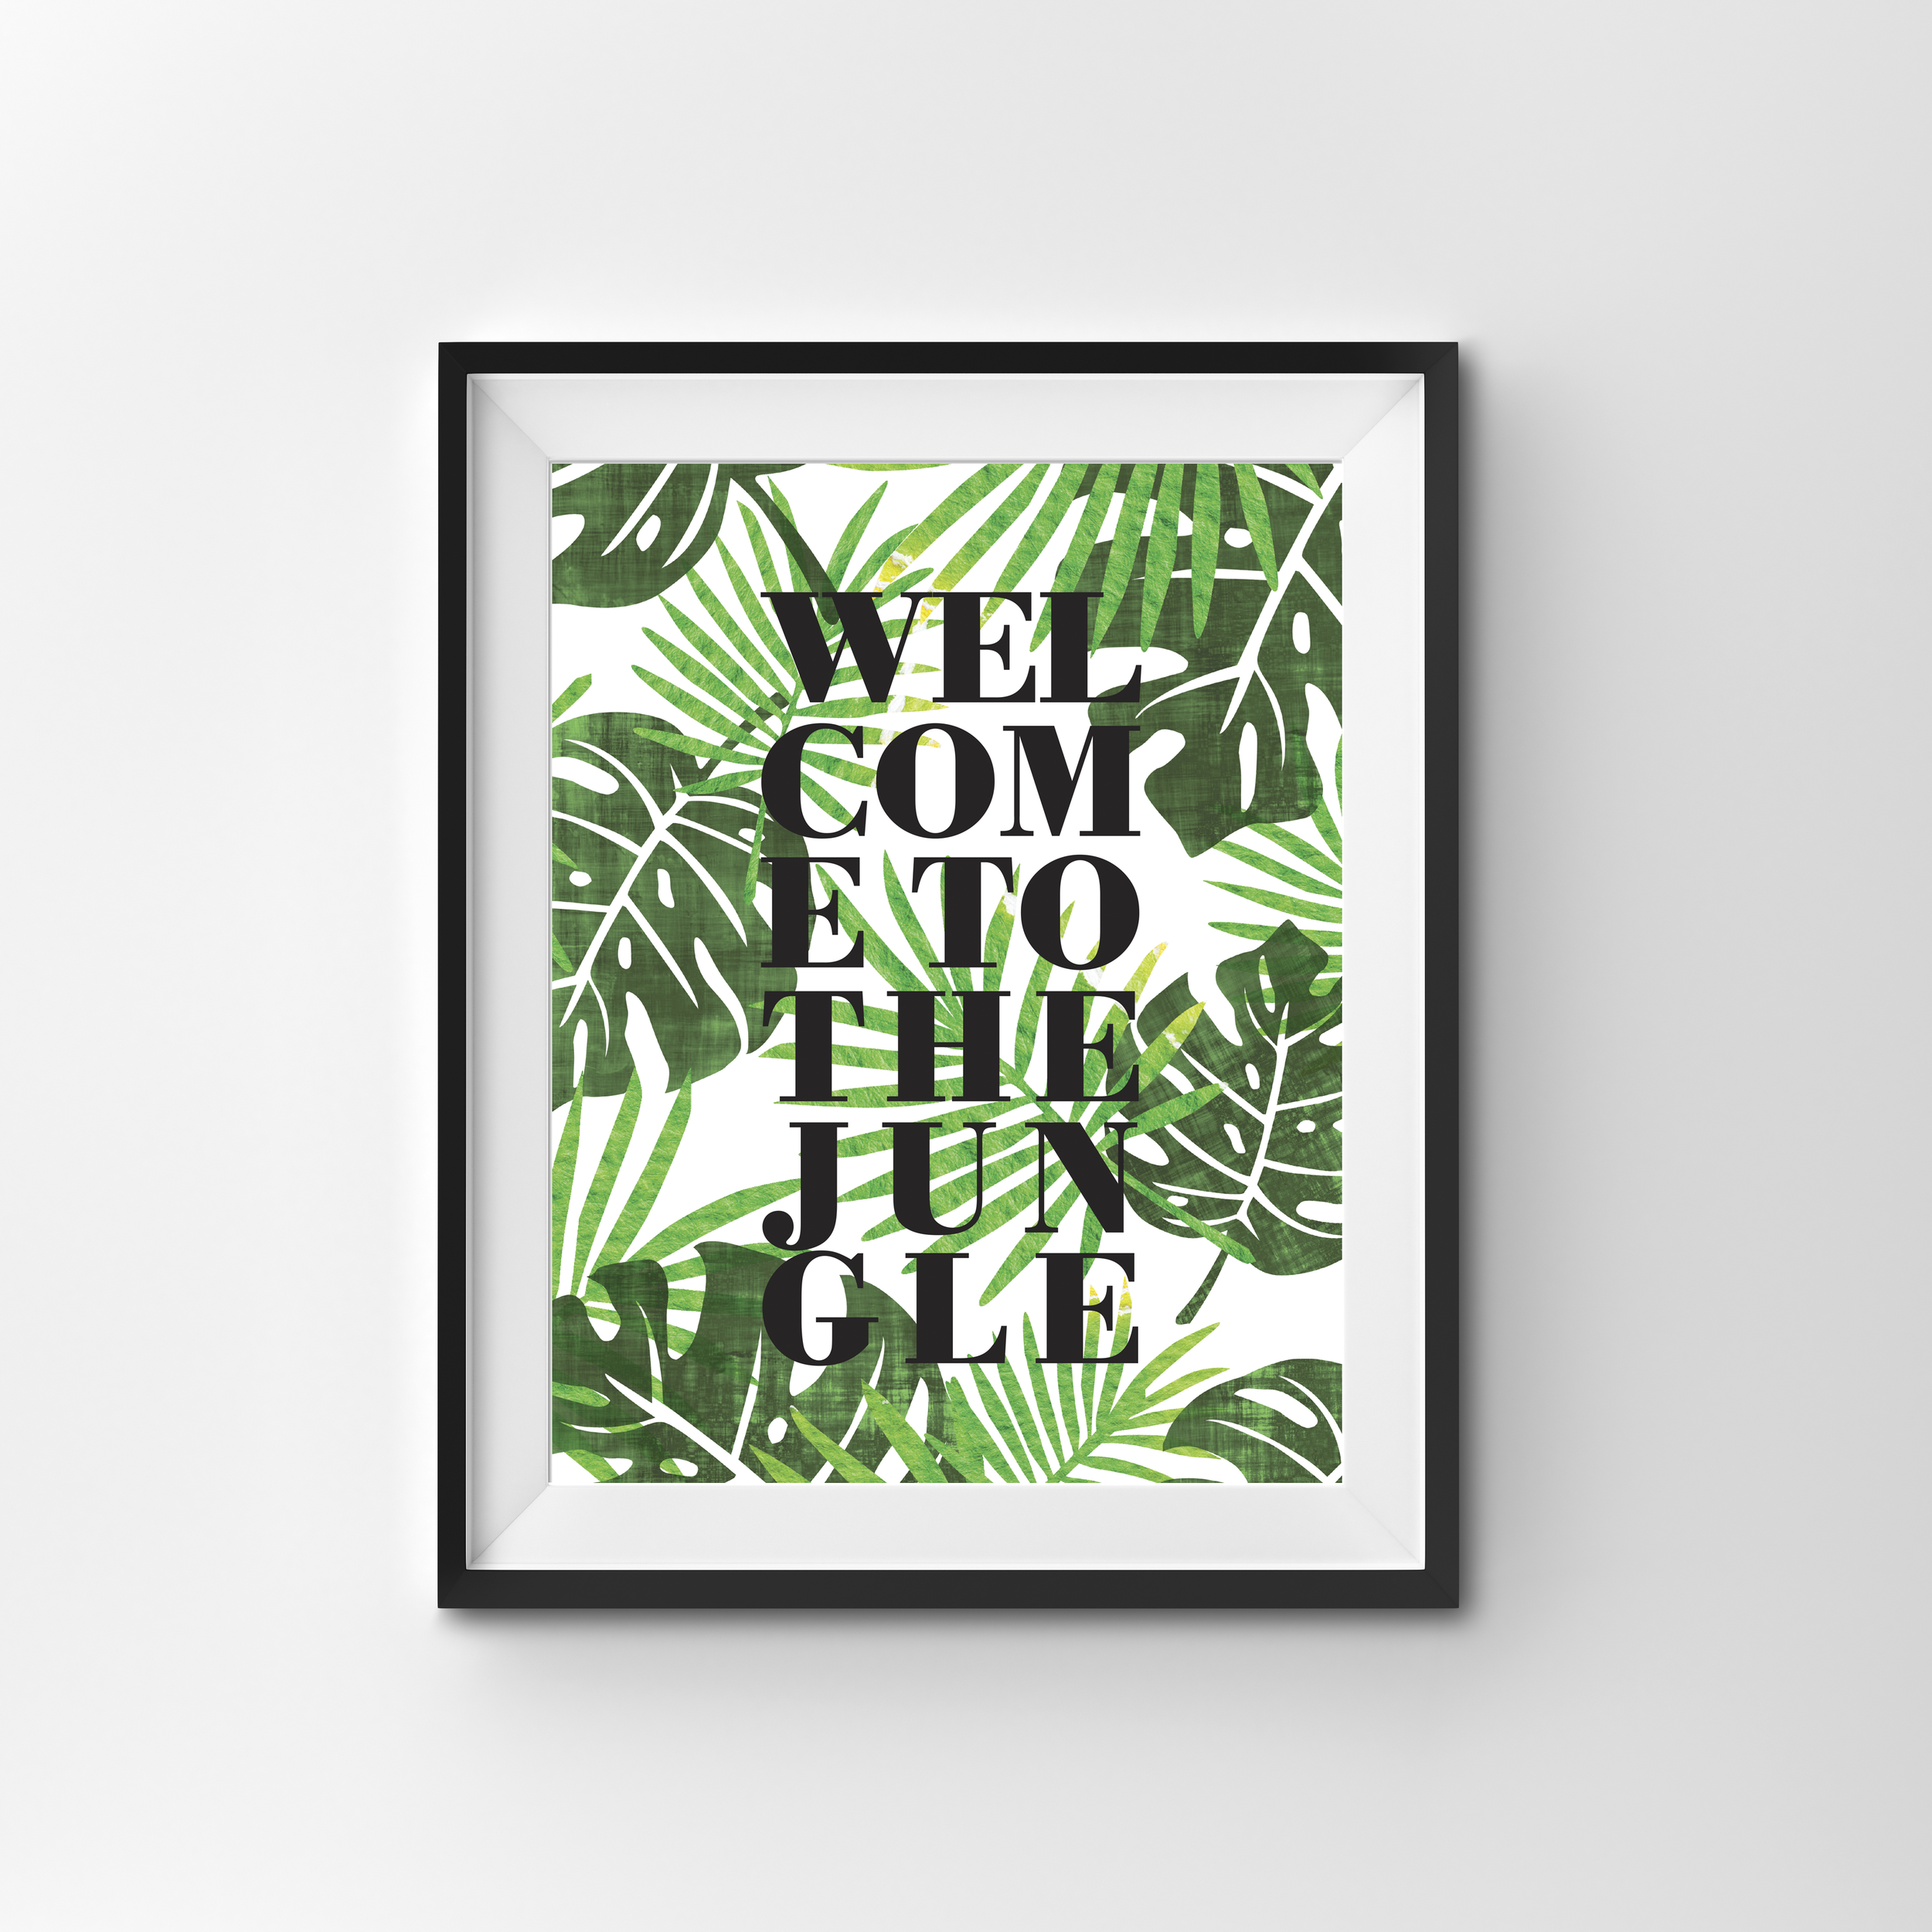 JUNGLE  COLOUR PRINT PRINTED ON 300gsm TEXTURED CARD STOCK A4 $17.00 A3 $27.00